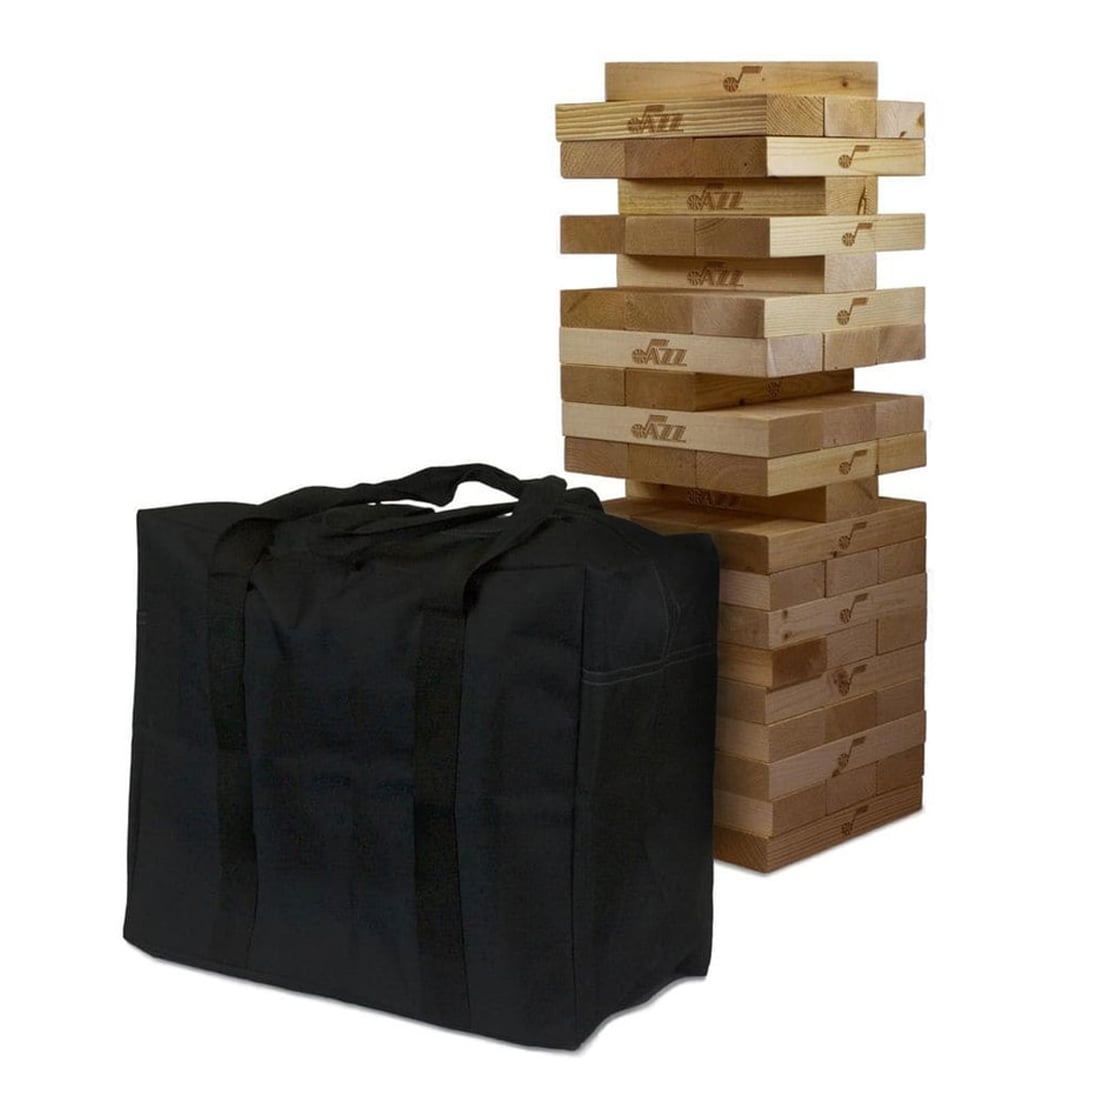 Utah Jazz Giant Wooden Tumble Tower Game